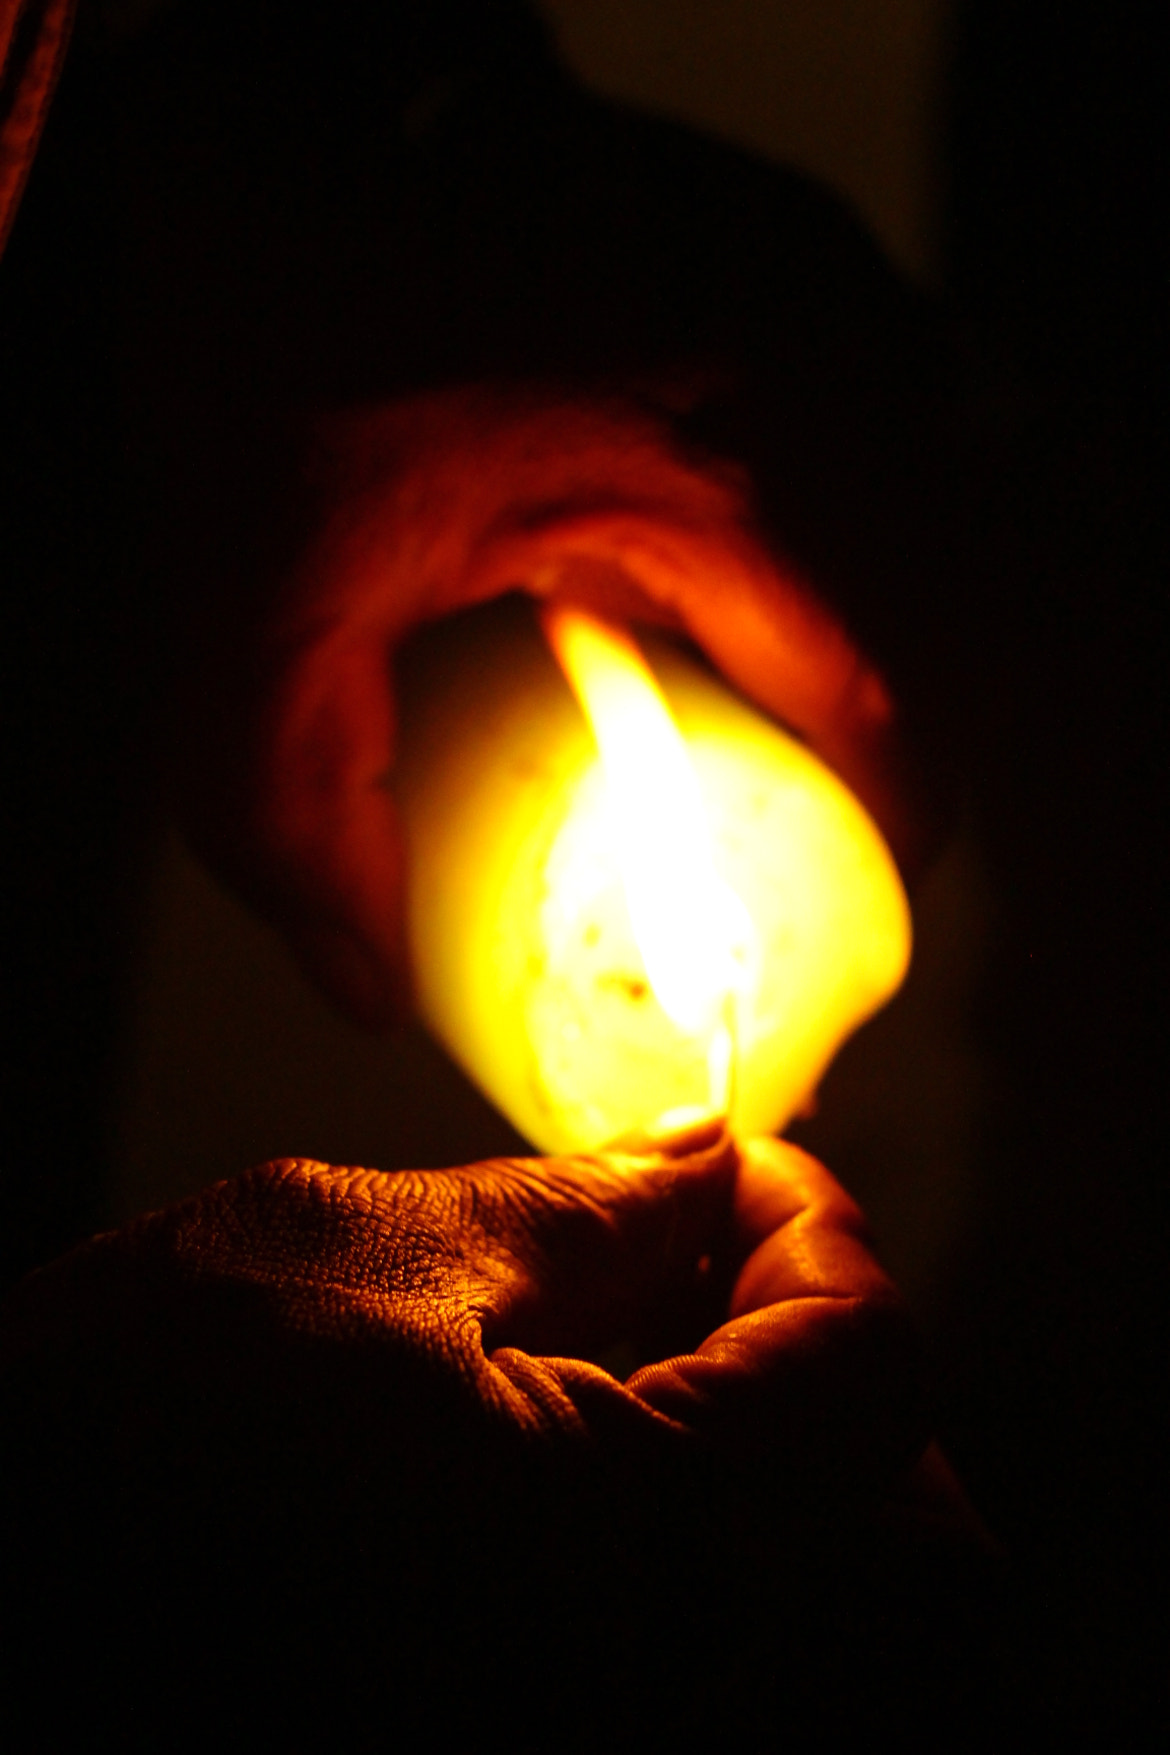 Photograph Candle Light by Phuriwat Chiraphisit on 500px